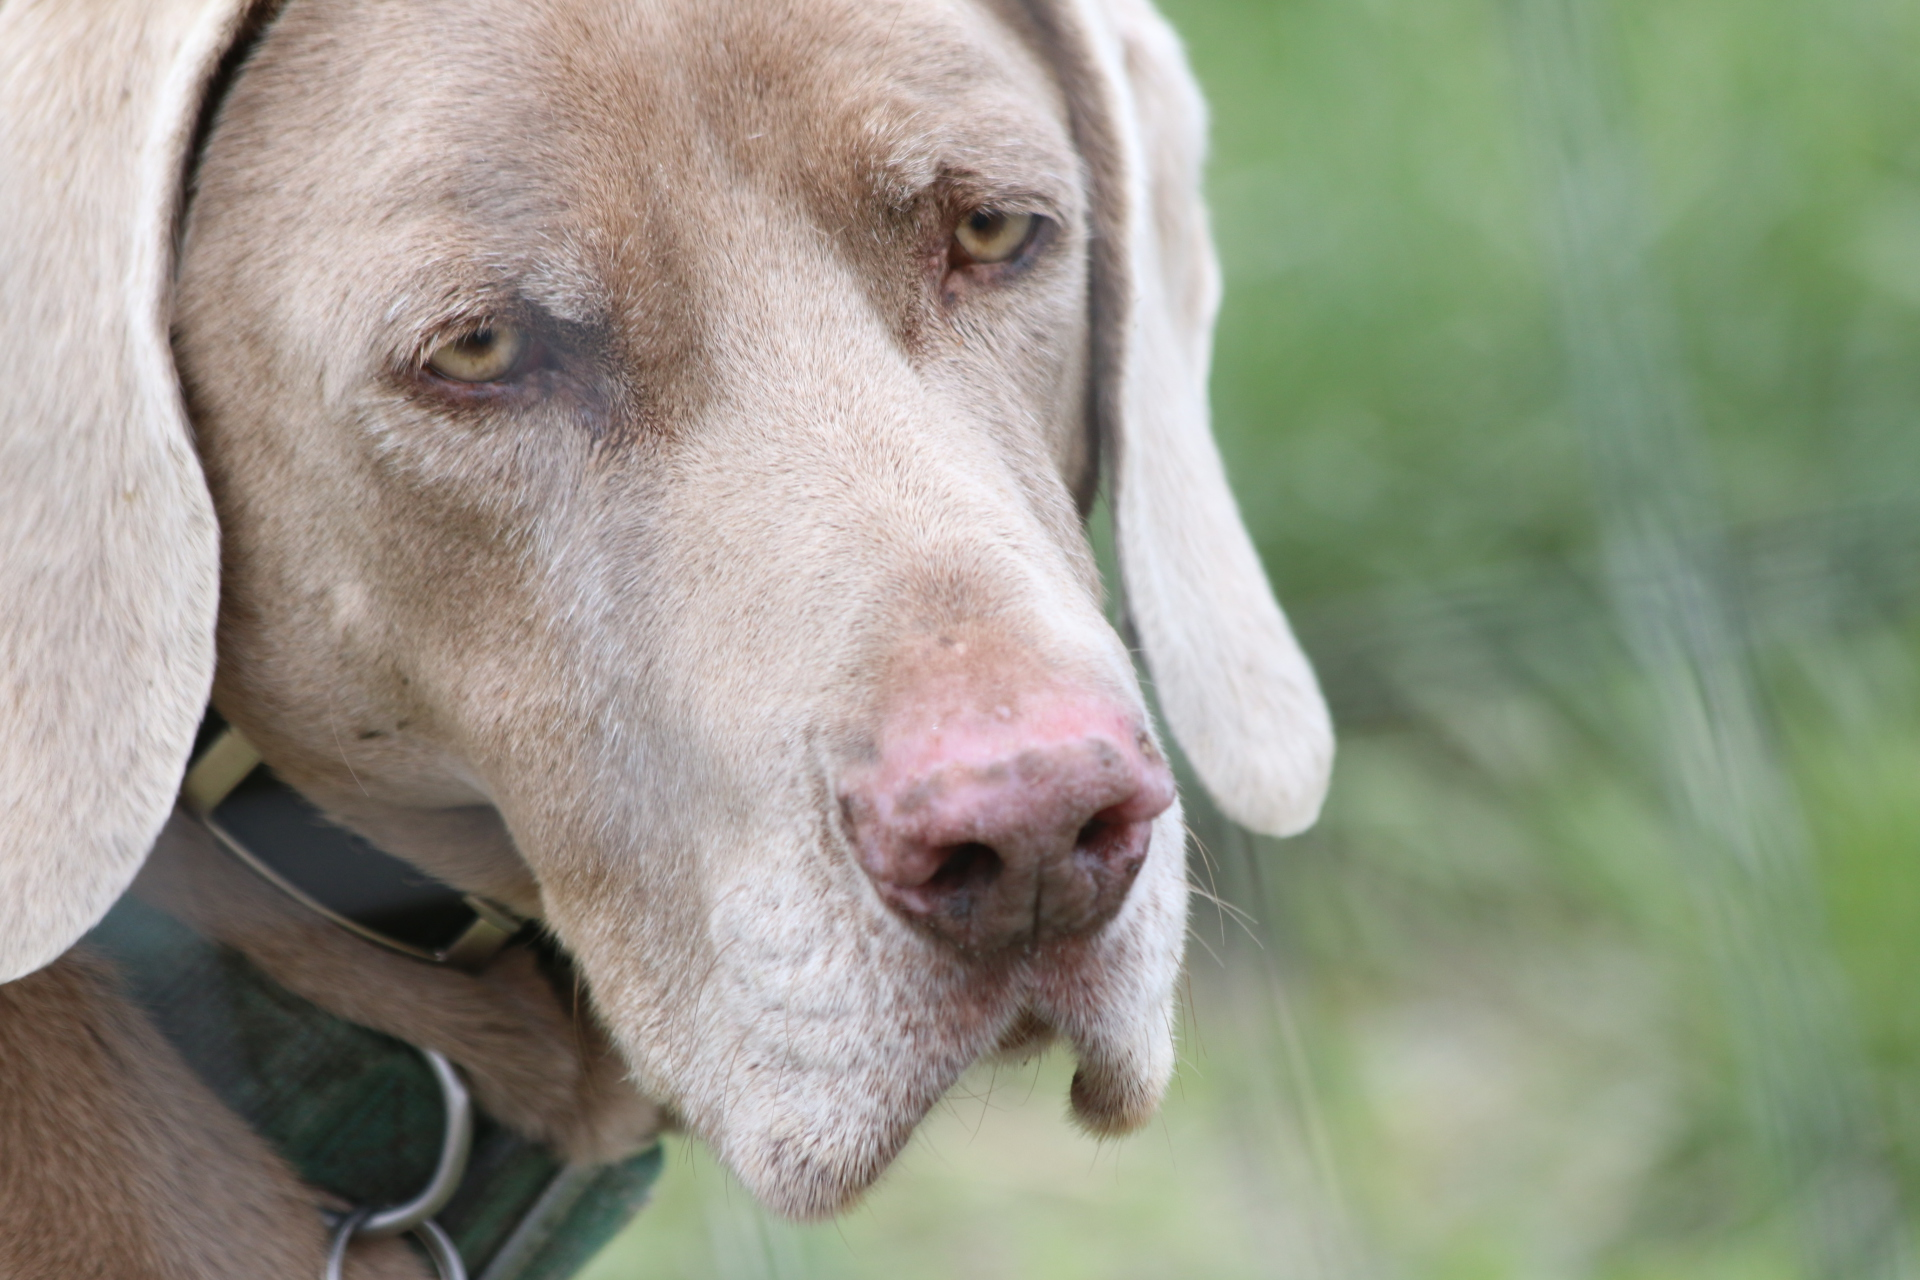 Dakota--13 Year Old Weimaraner--January 2002-September 2016